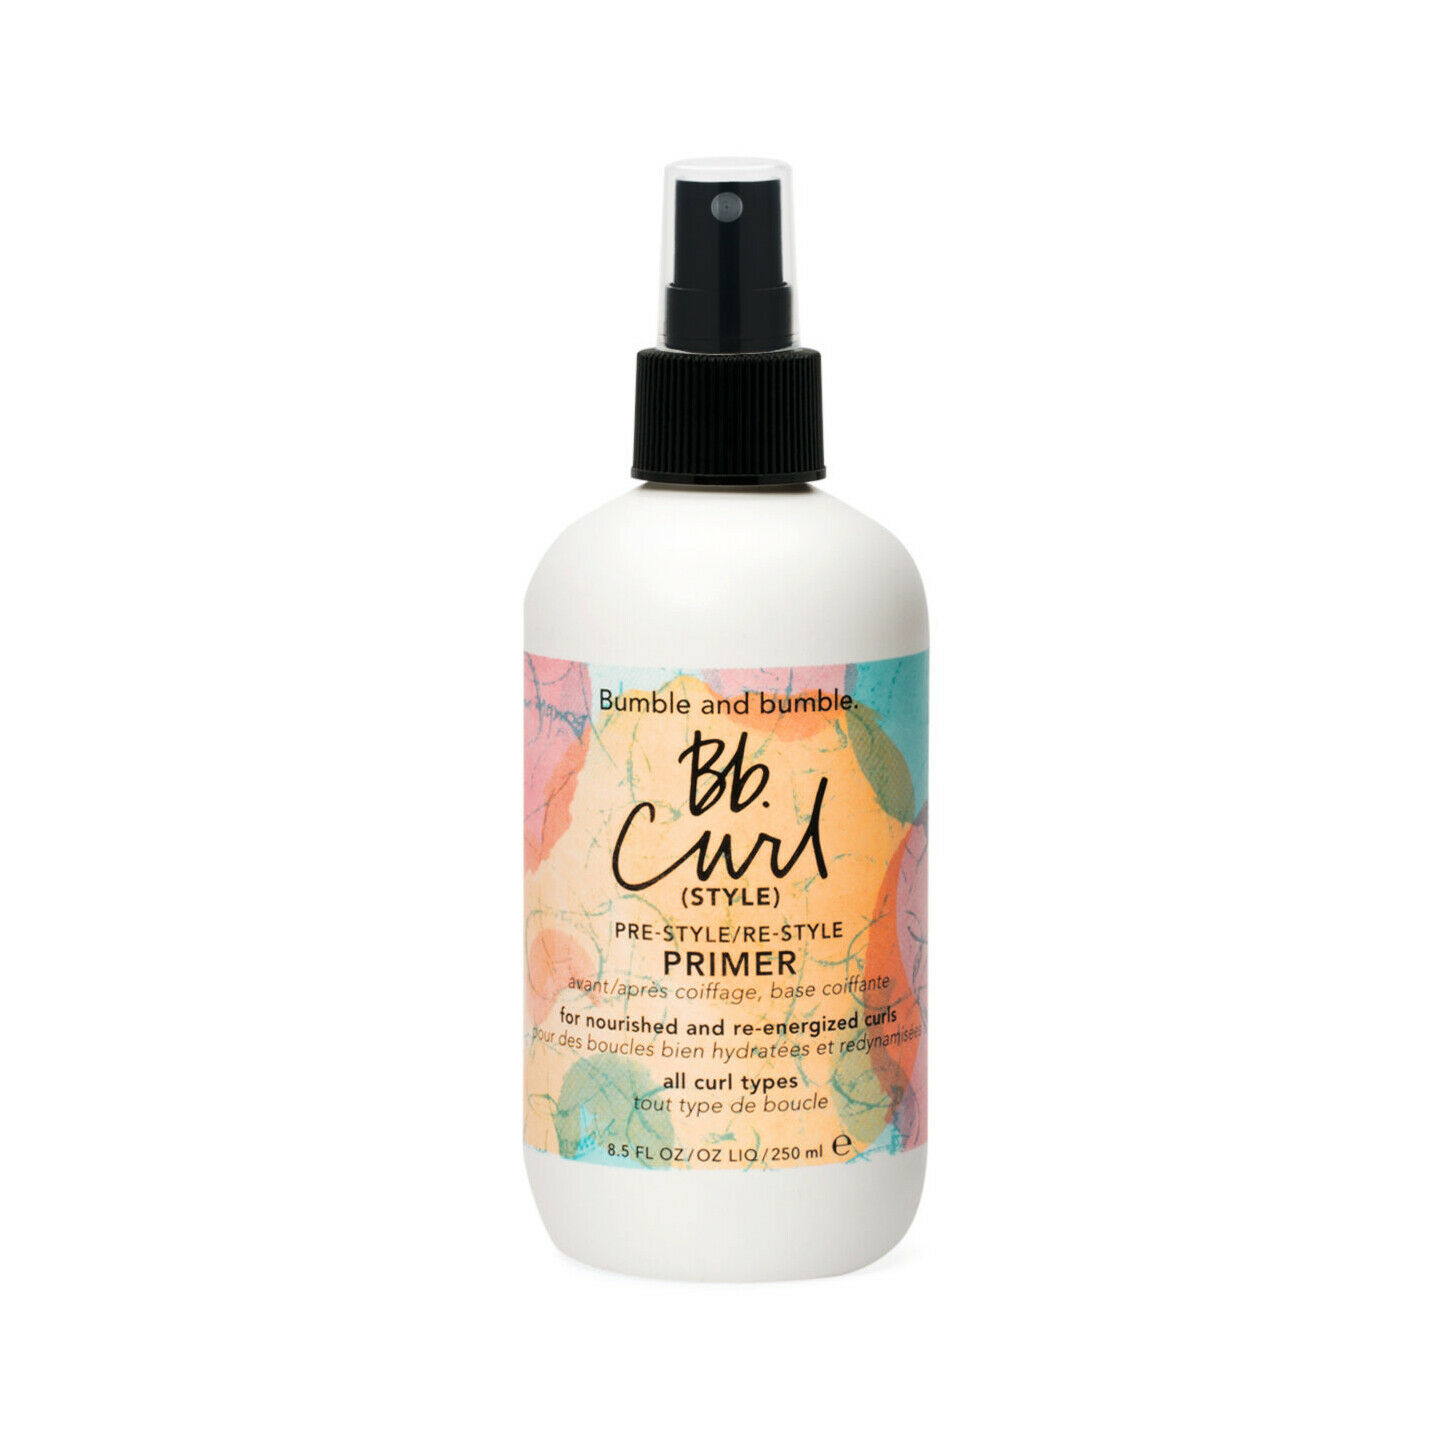 Bumble and Bumble Curl Style Pre Style Re Style Primer 8.5 o